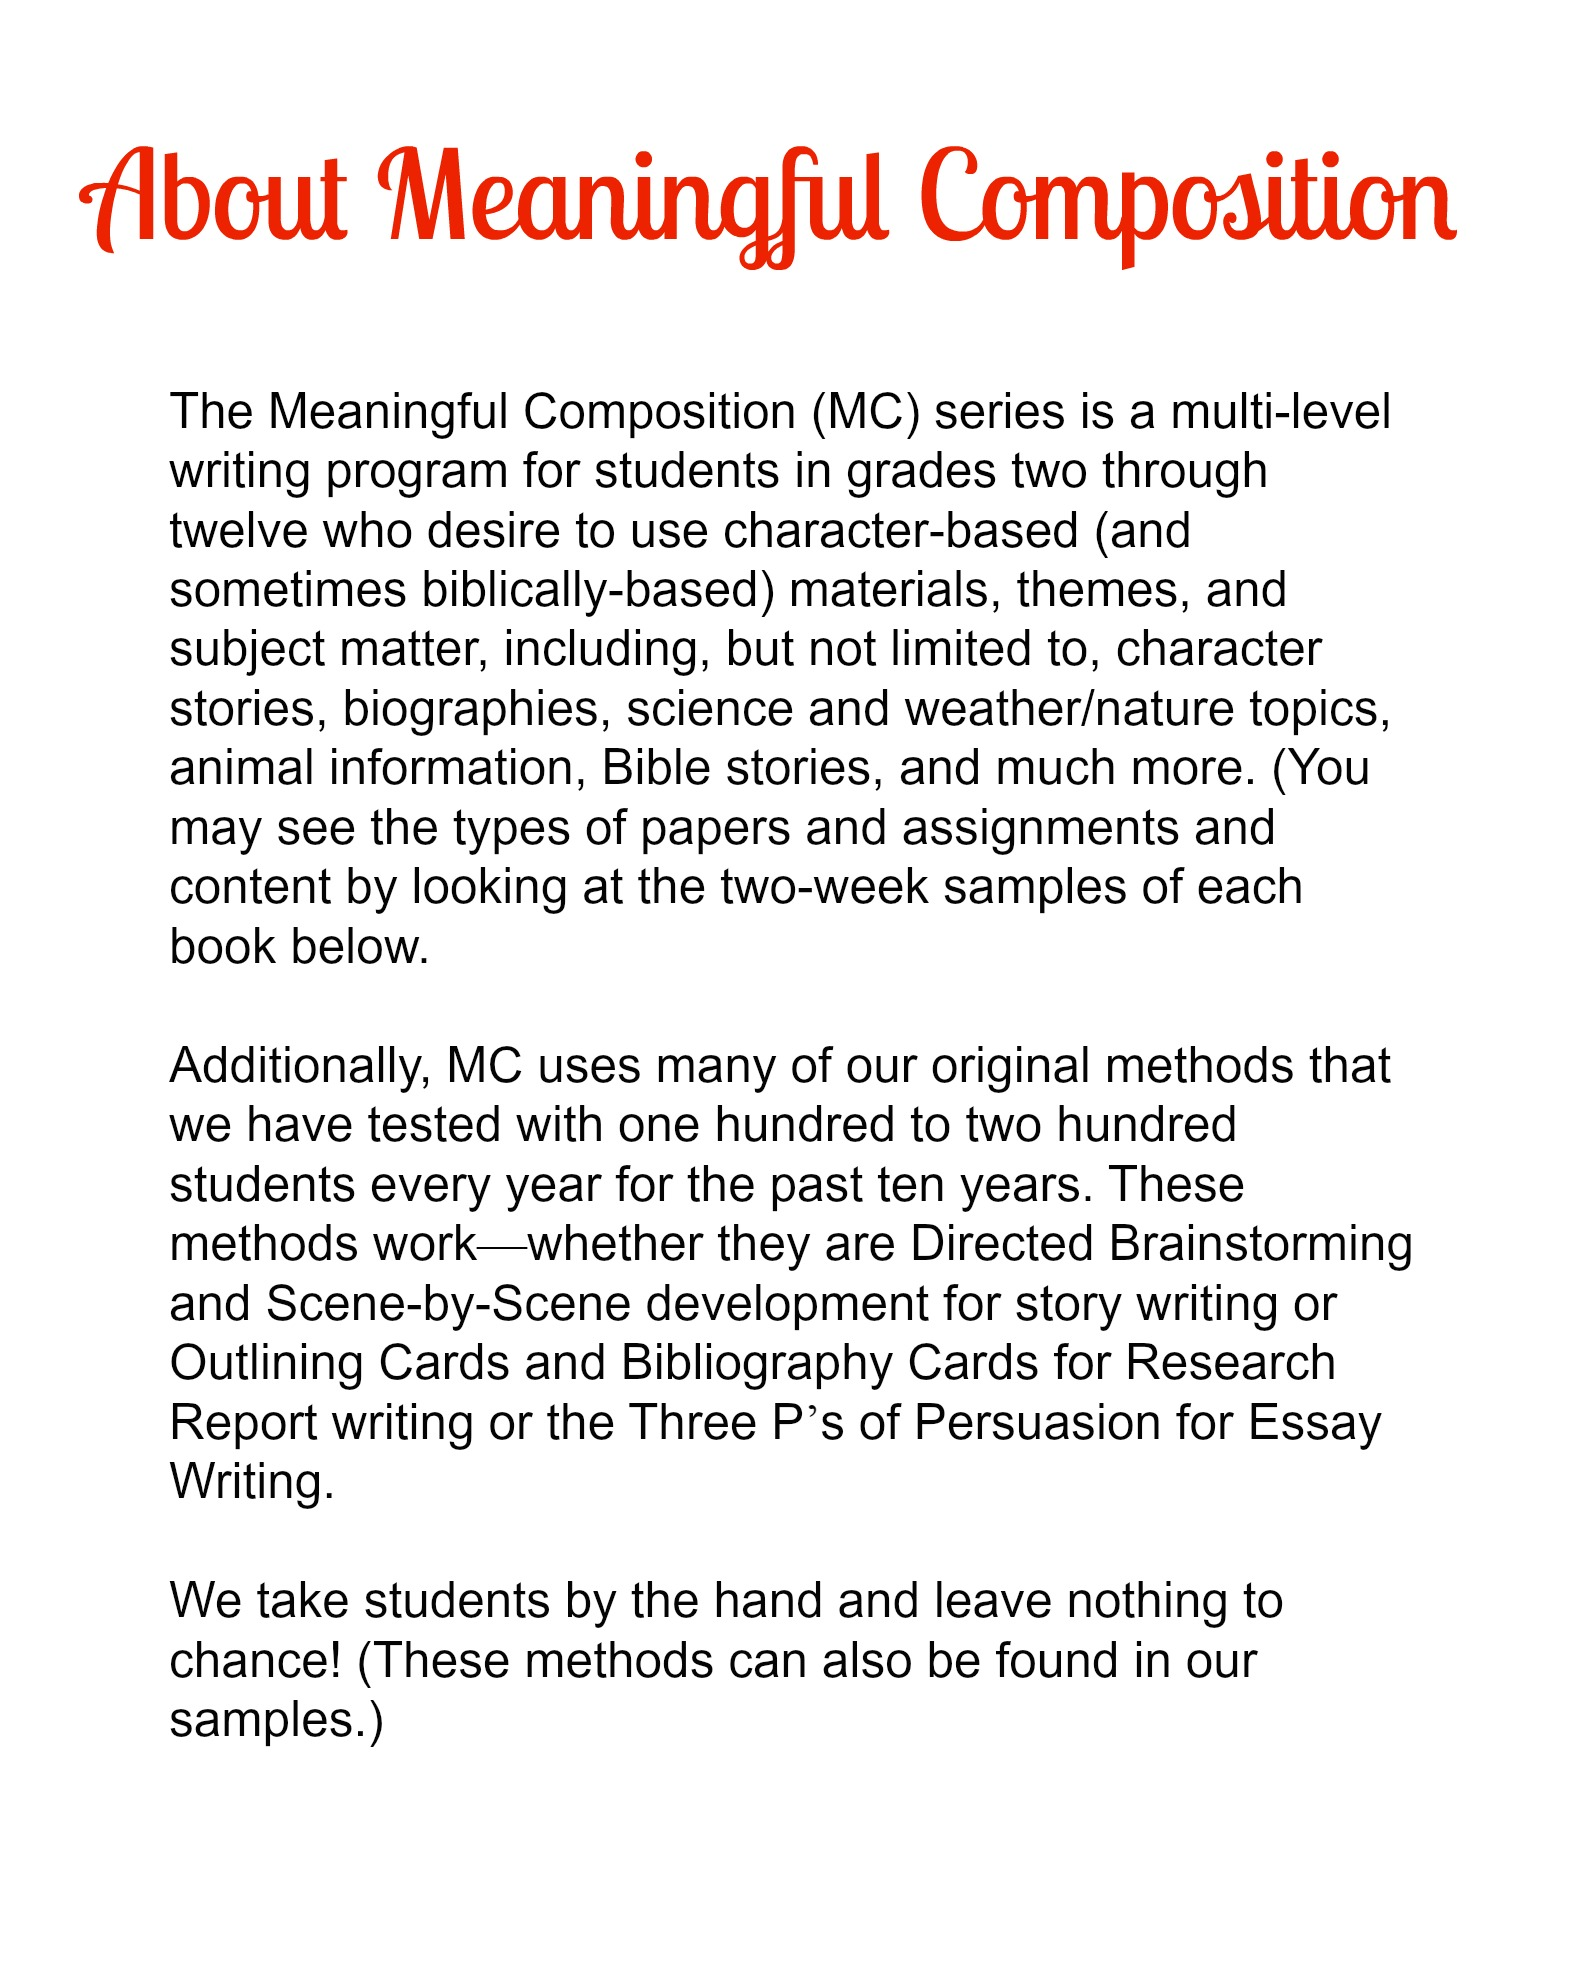 022 Examples Of Persuasive Essays Expository Essay Introductions Creative Writing Course Paragraph On Bullying About Meaningful Compos Cyber How To Prevent Five Excellent 5th Grade Written By Graders Example Argumentative-persuasive Topics Full